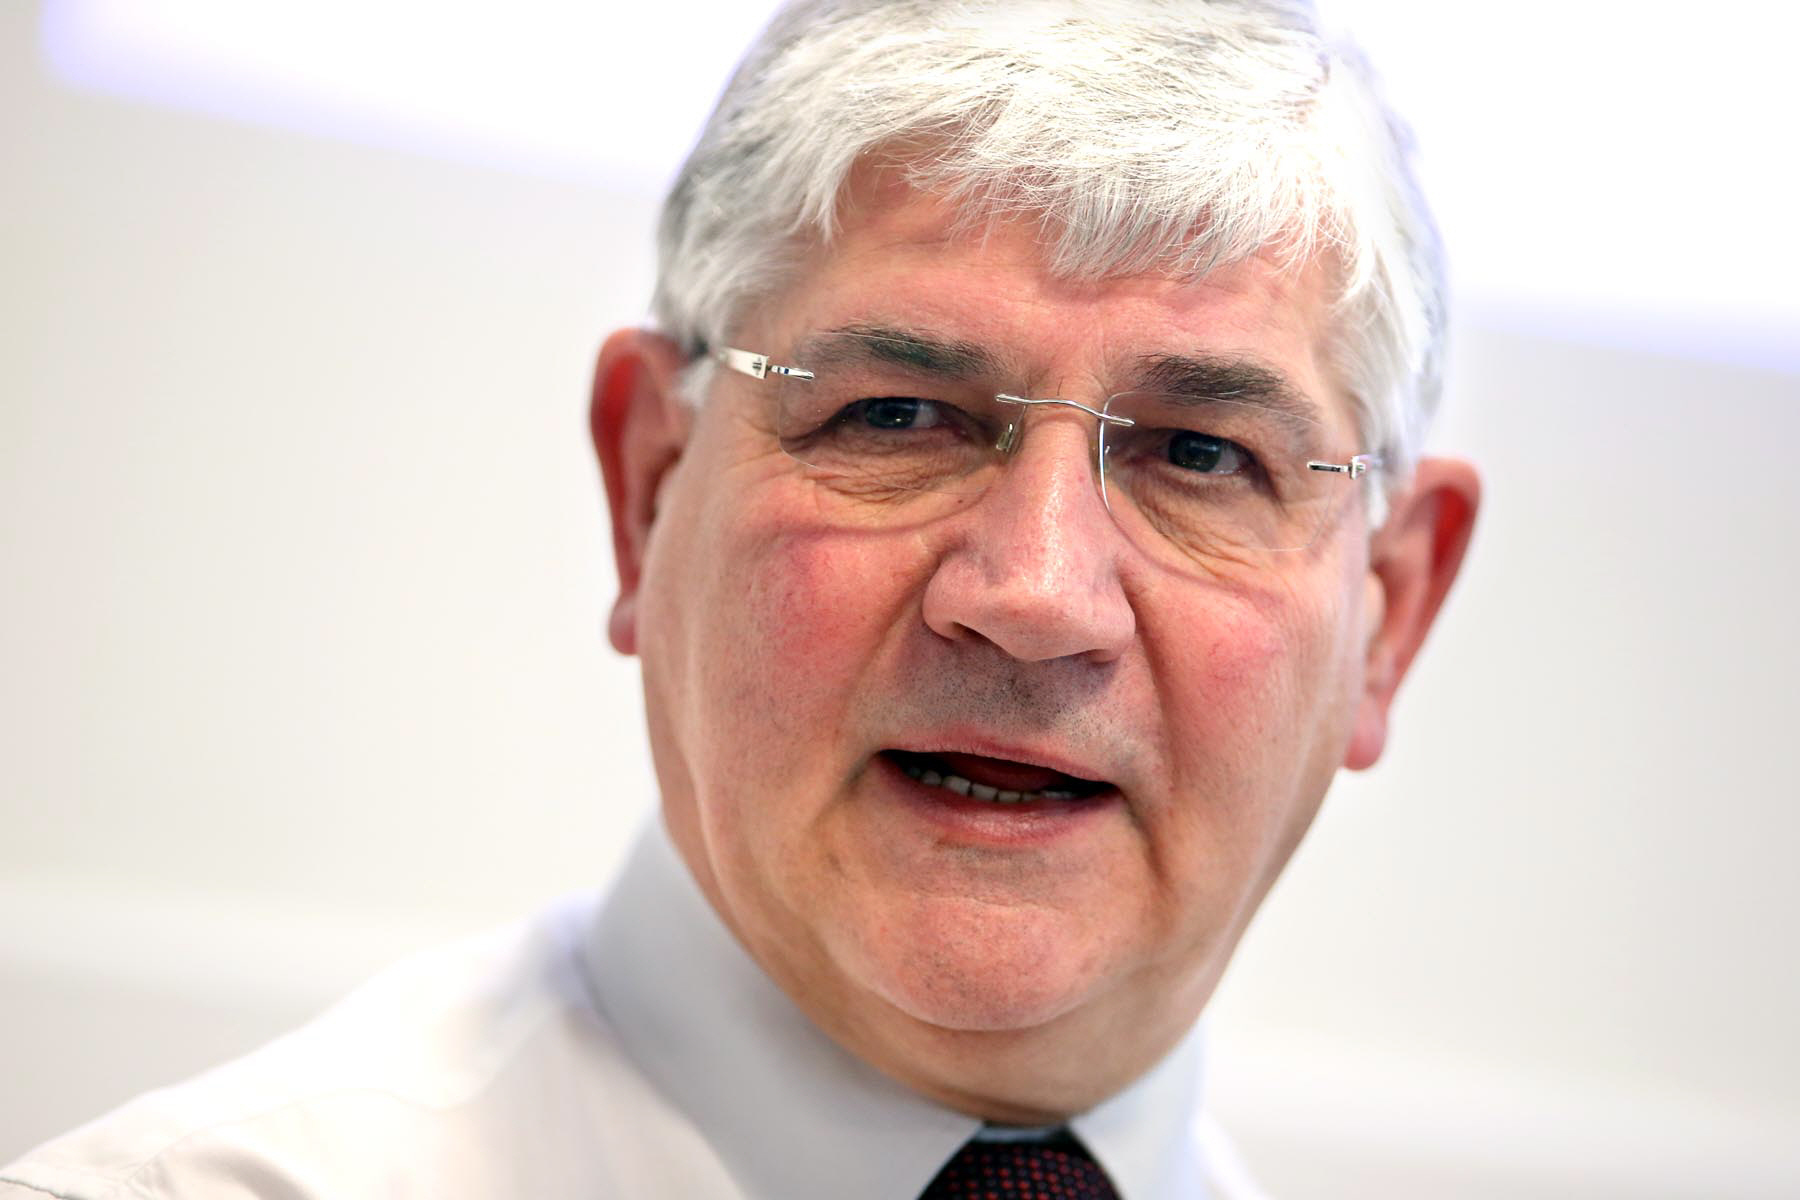 Police and Crime Commissioner for Co. Durham, Ron Hogg